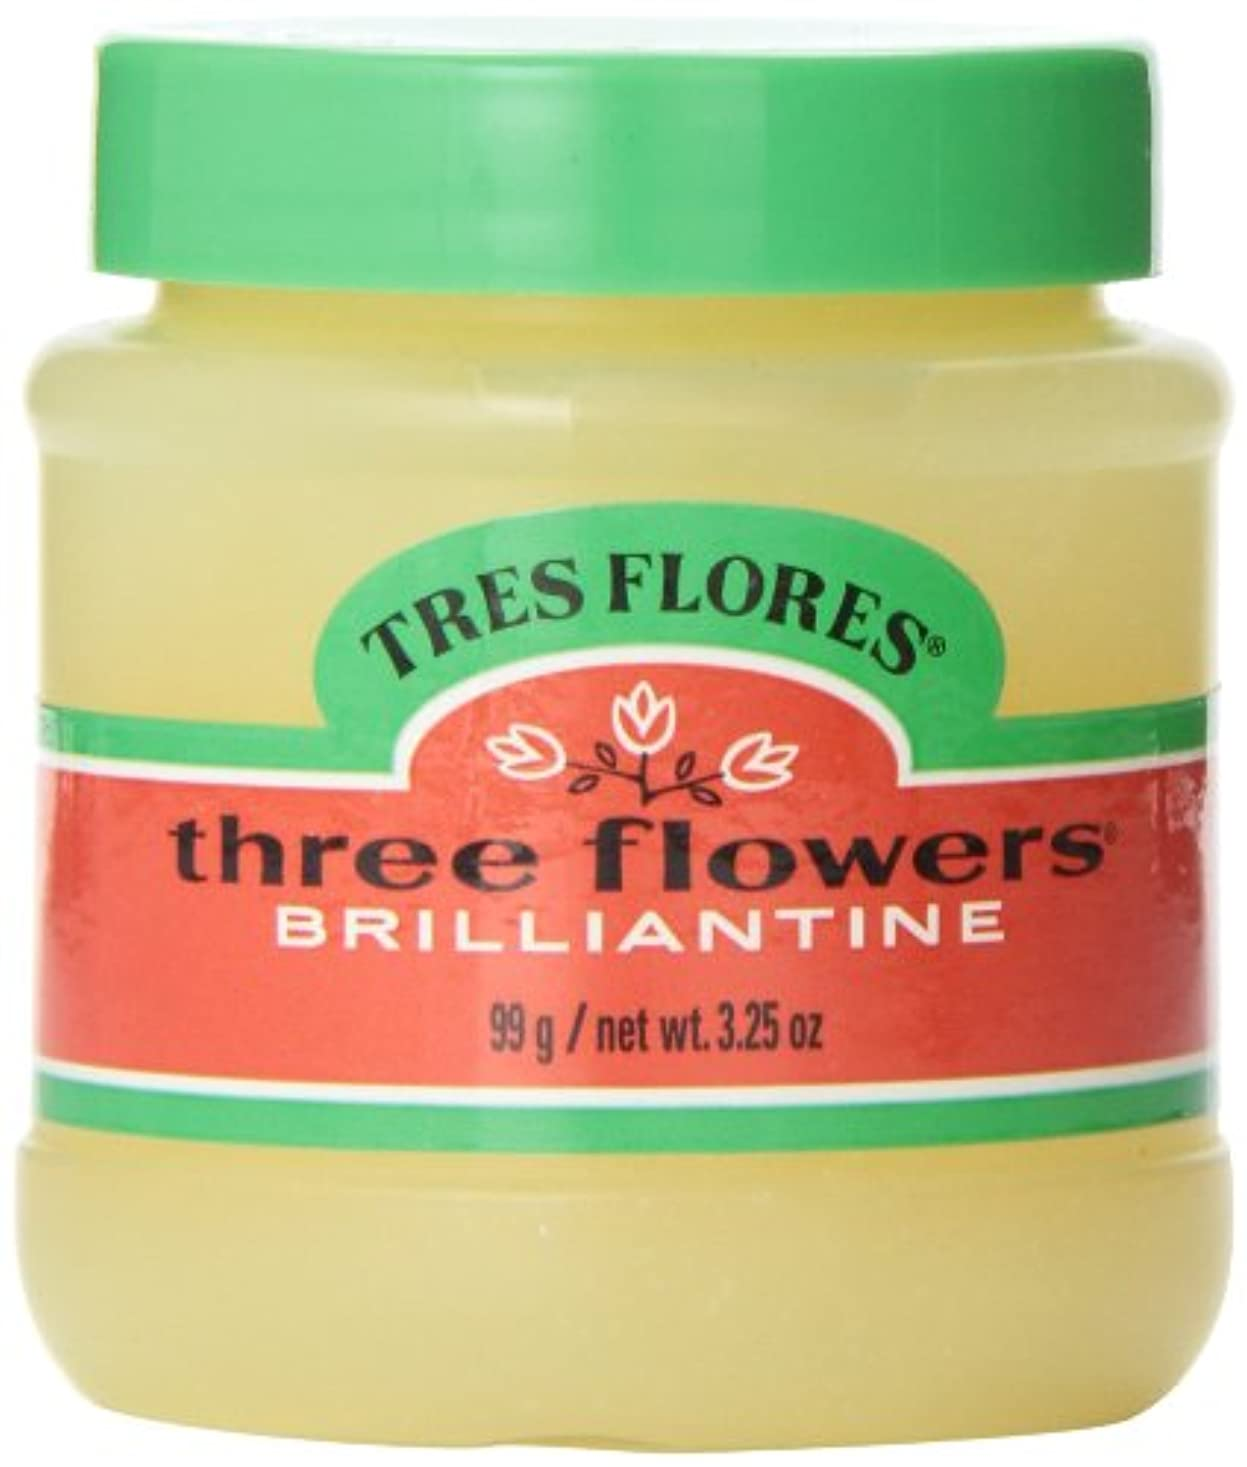 悲しい機知に富んだ親Three Flowers Brilliantine Pomade Solid 3.25oz